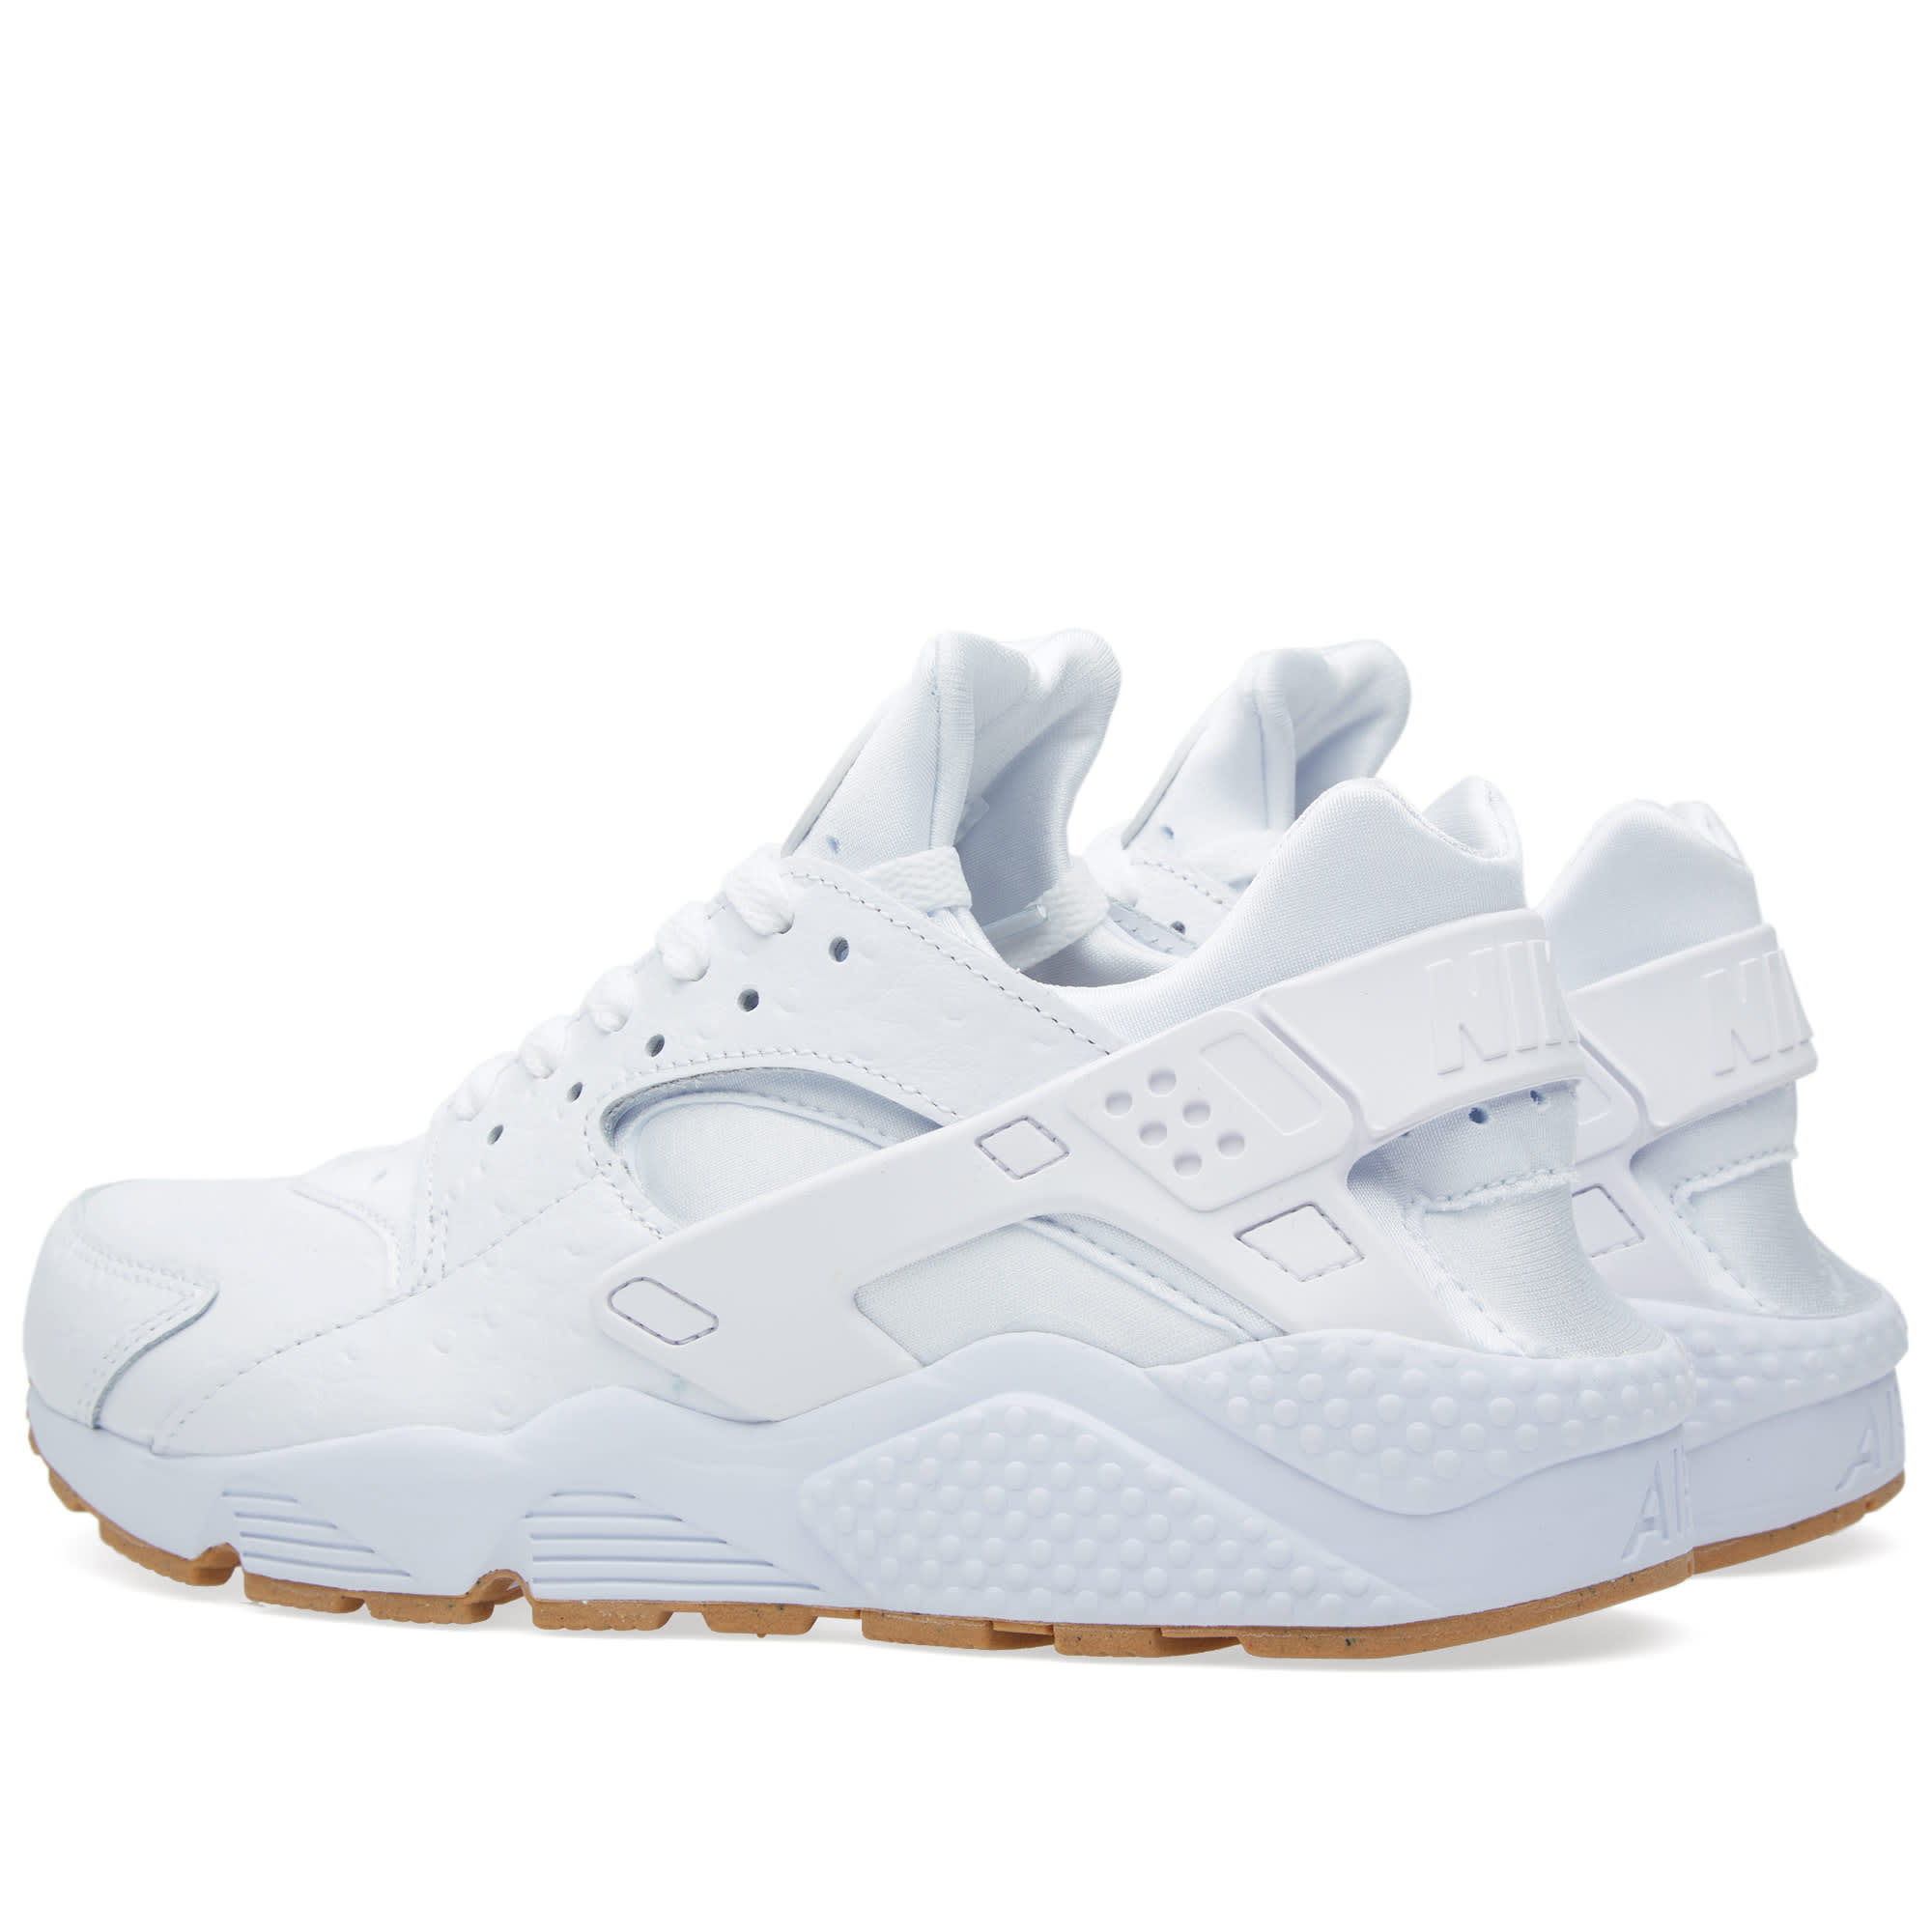 nike air huarache run white gum. Black Bedroom Furniture Sets. Home Design Ideas